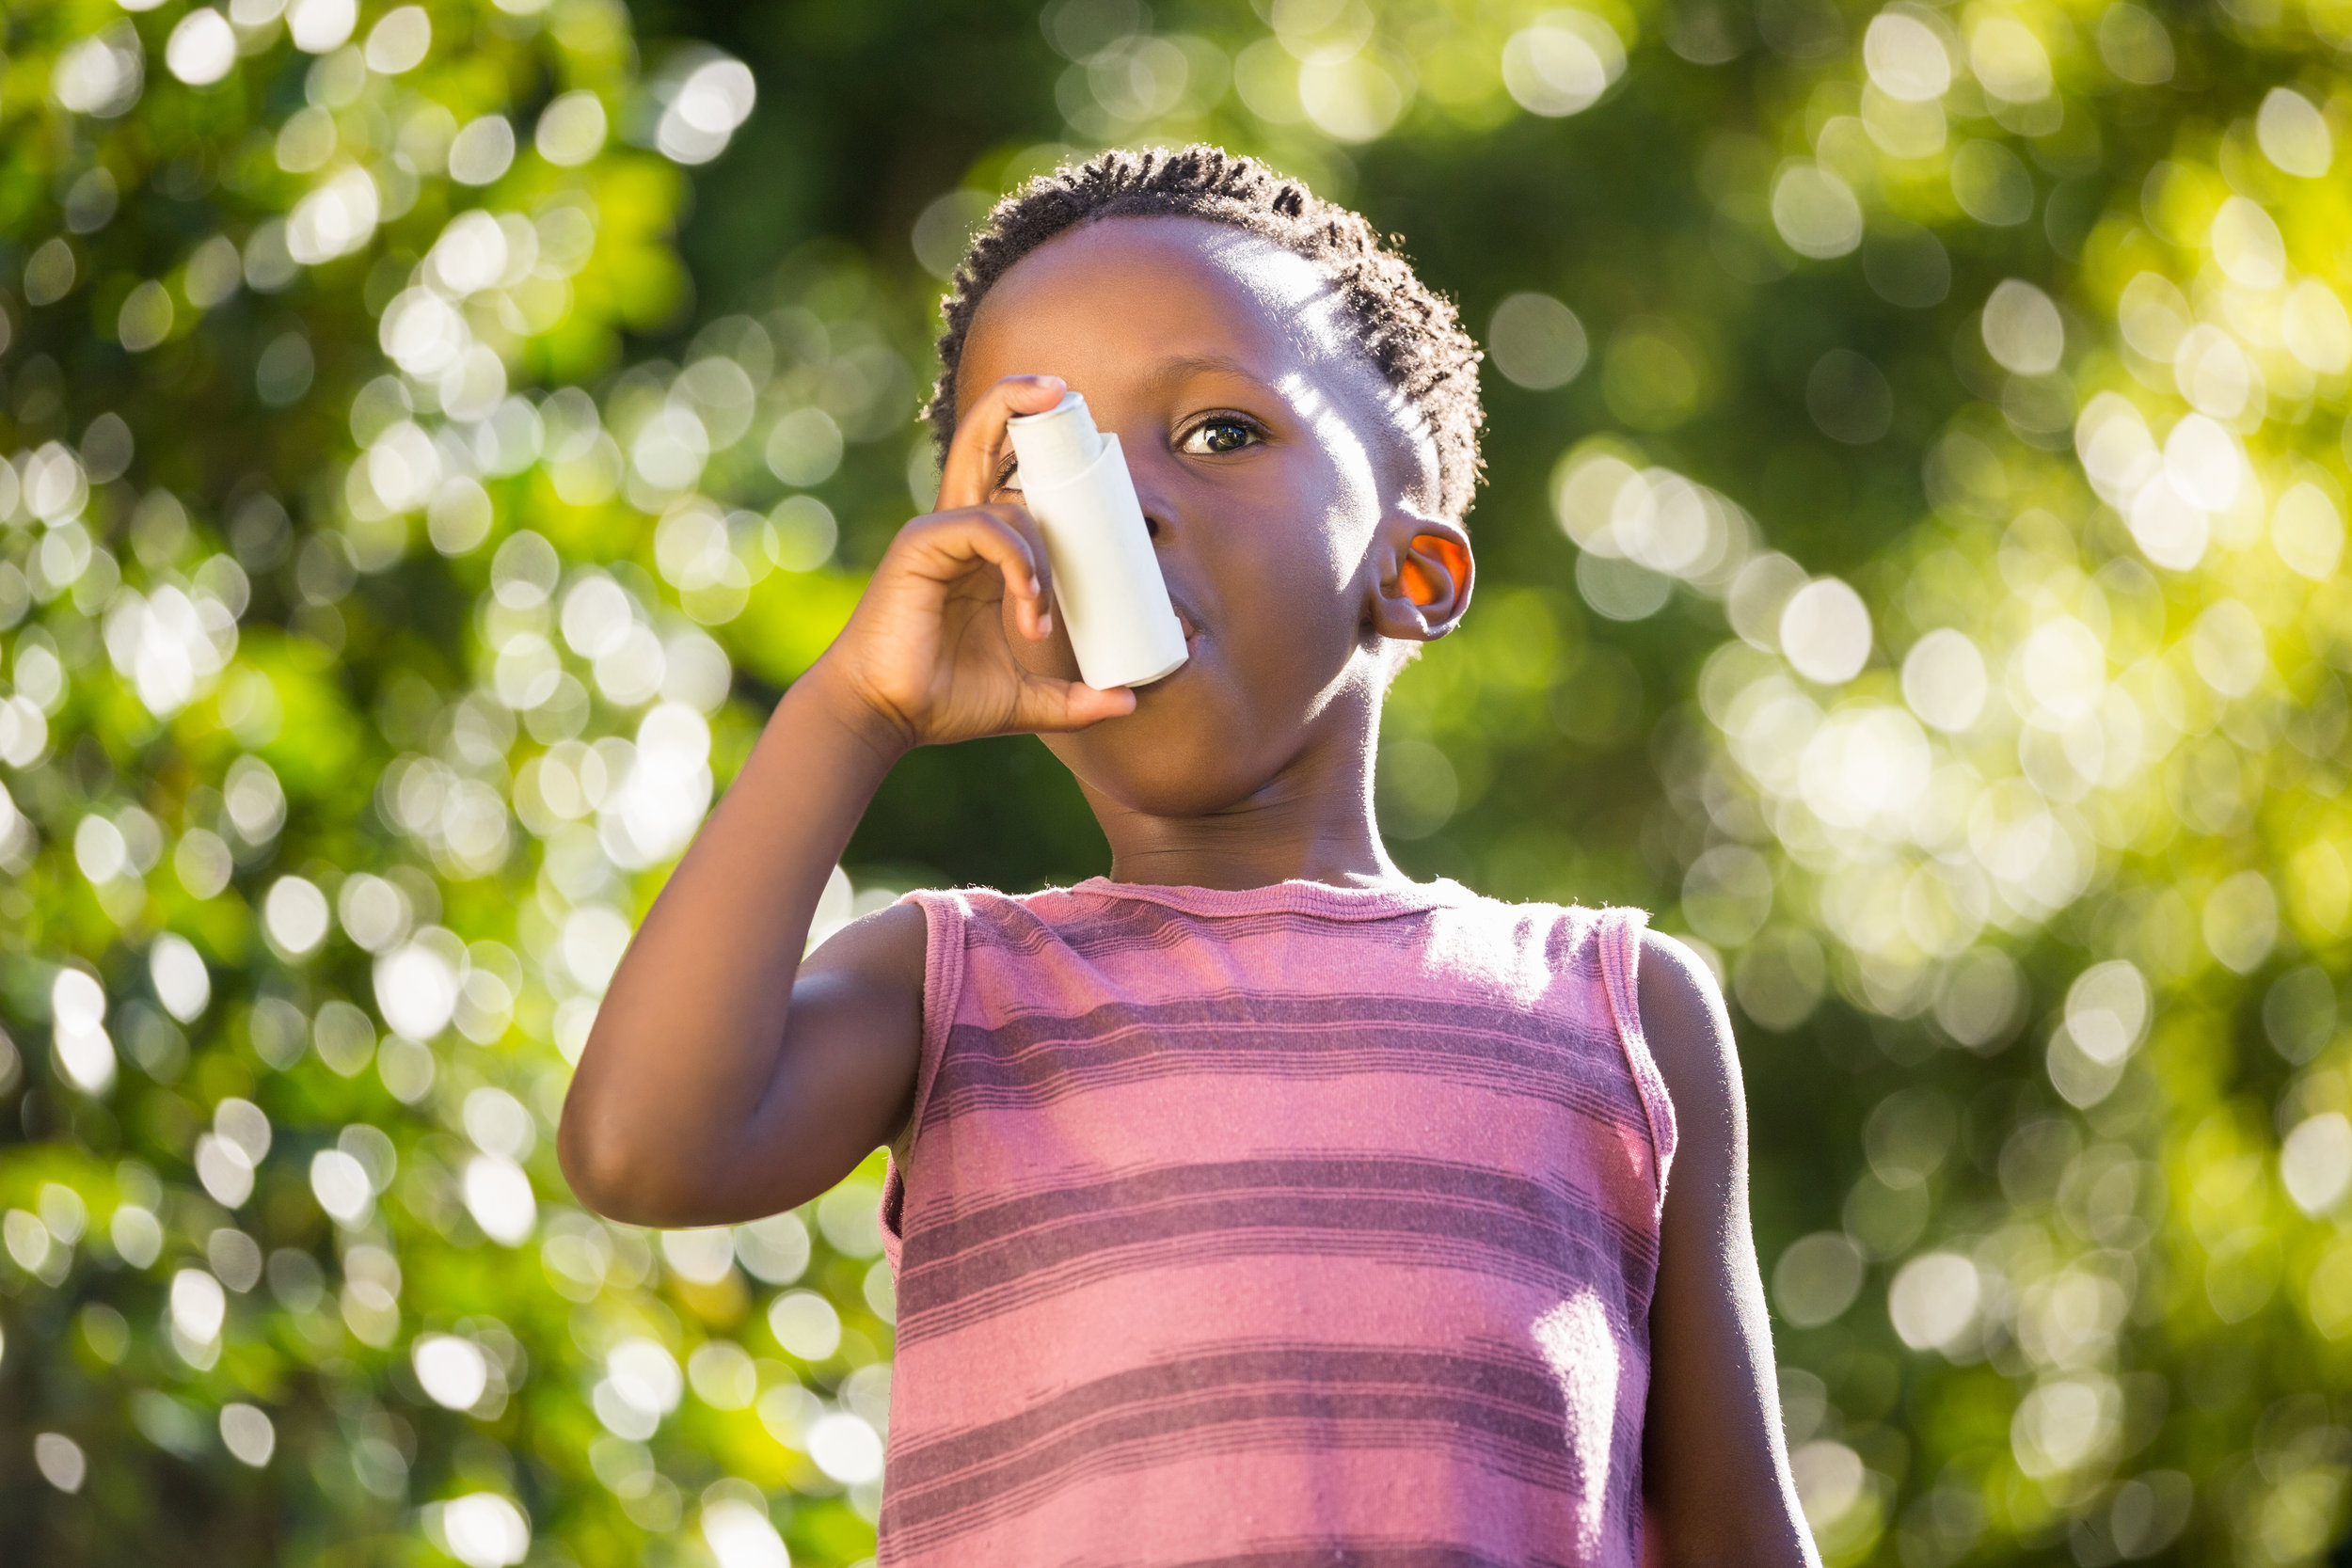 housing problems are closely linked to childhood asthma. photo: wavebreakmedia/shutterstock